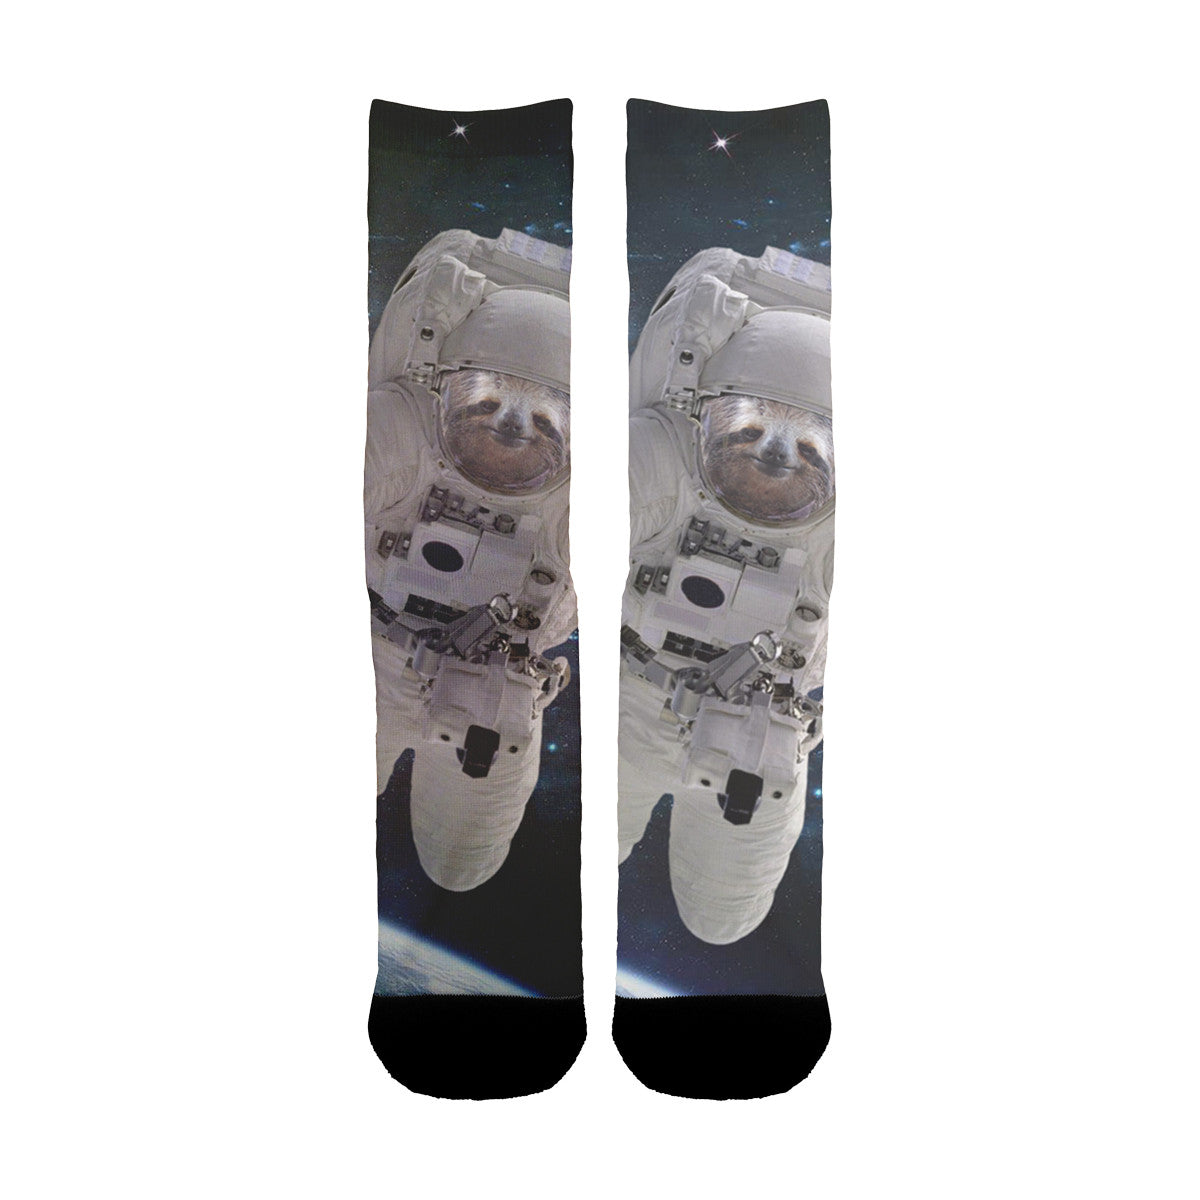 Sloth Astronaut Socks